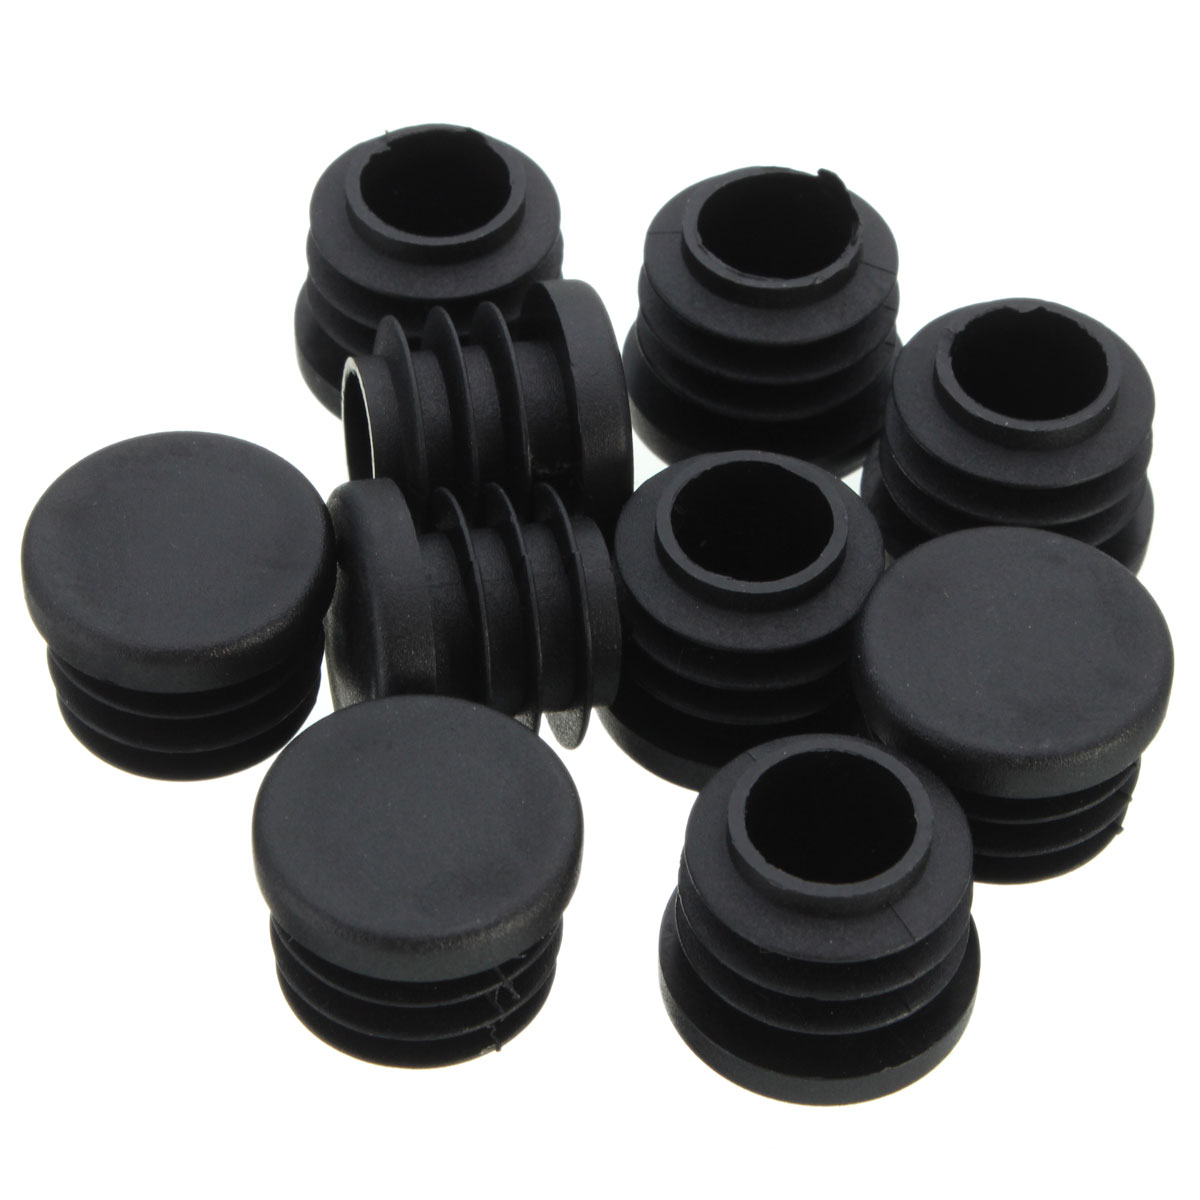 Pcs black plastic blanking end caps cap insert plugs